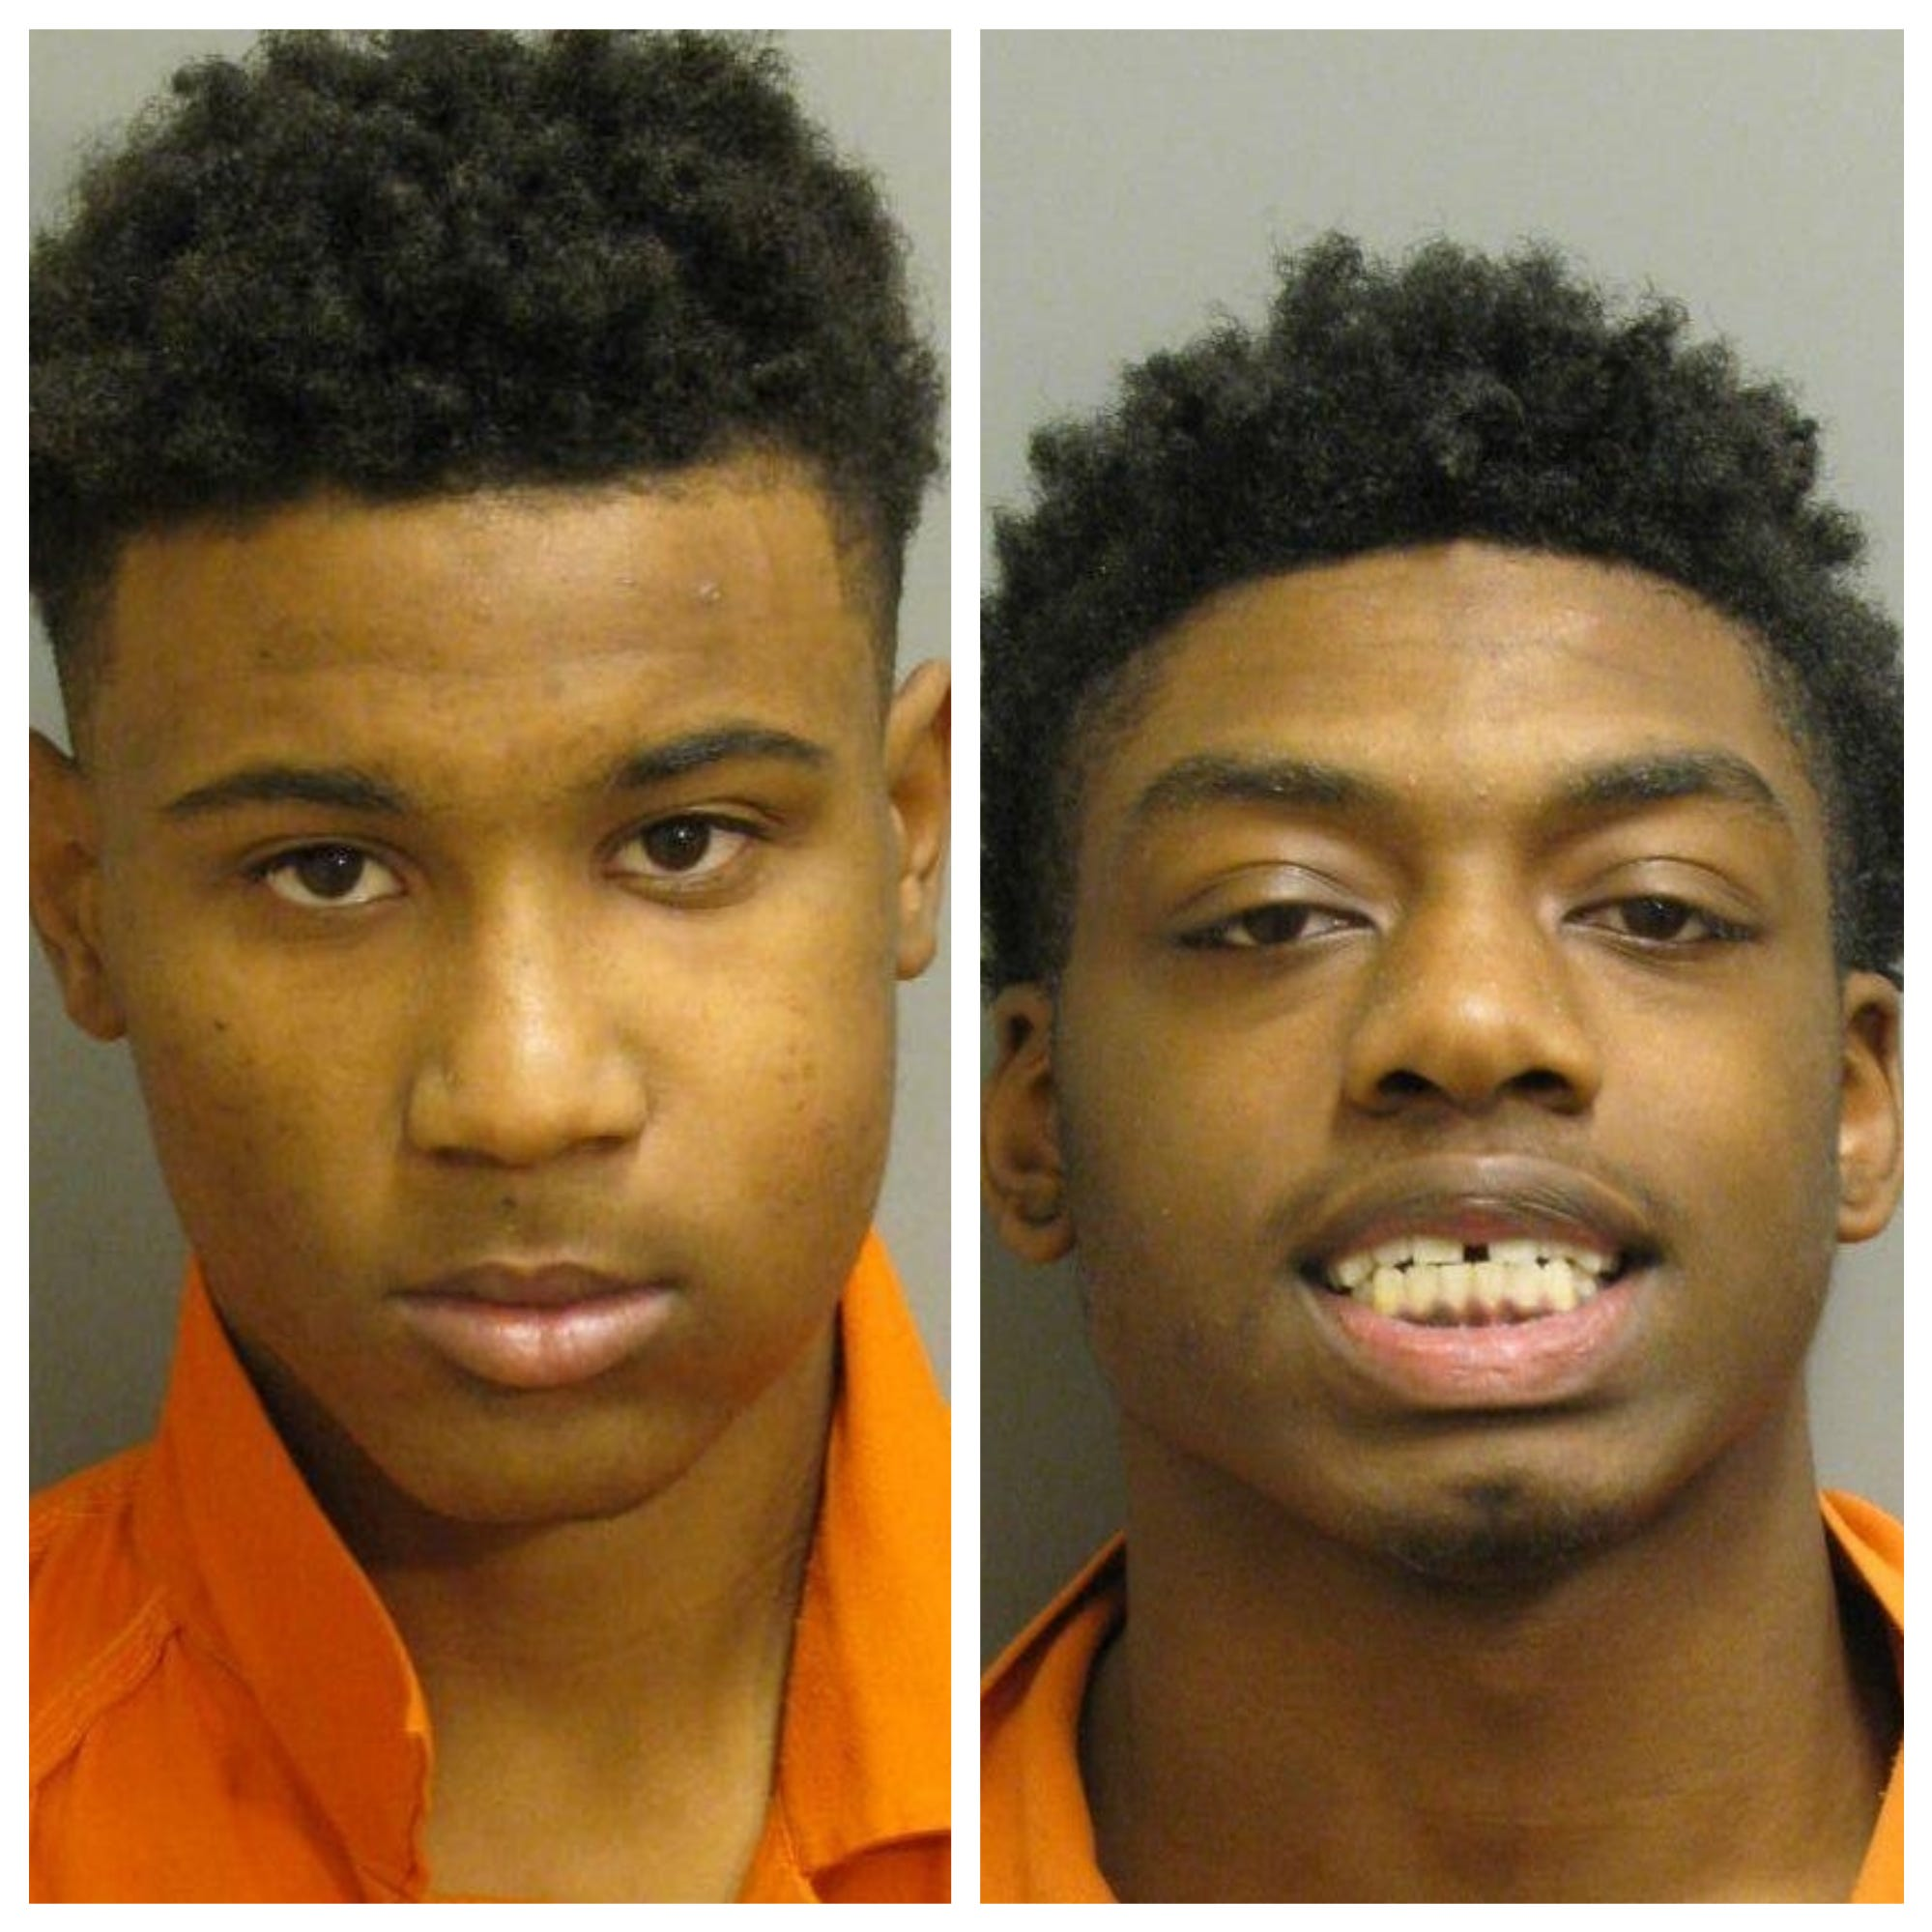 Two more teens charged in death of Carver High student